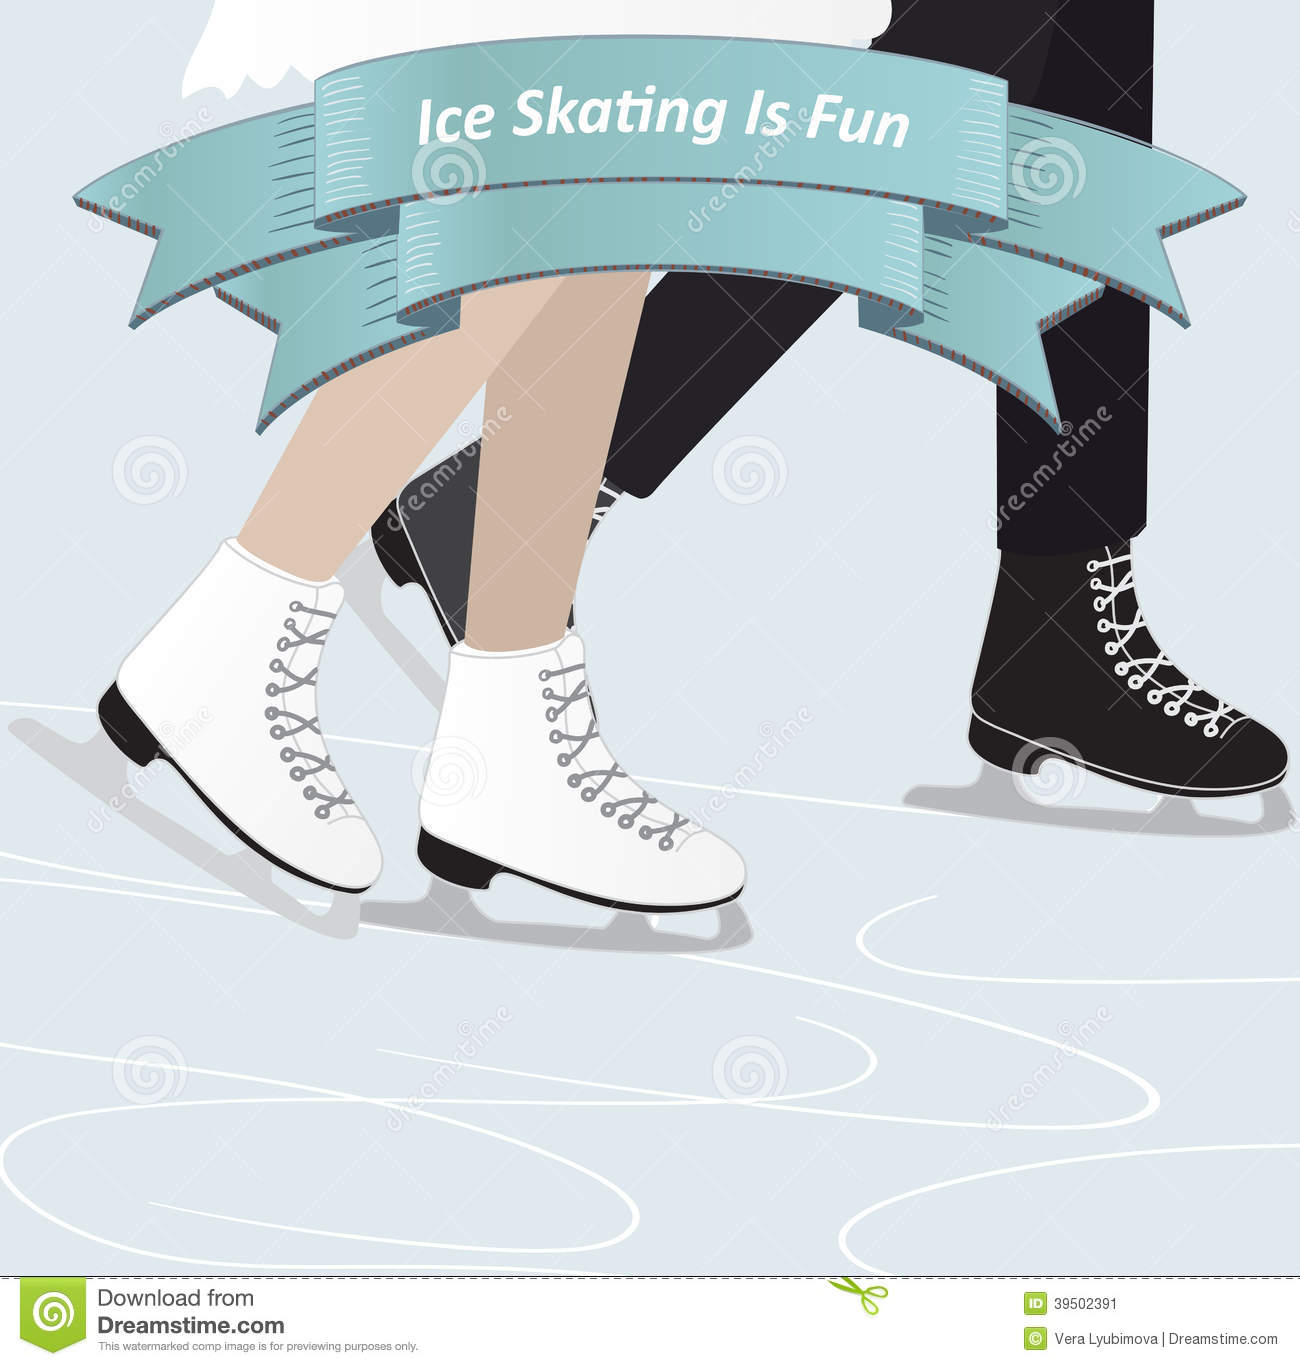 Two people ice skating